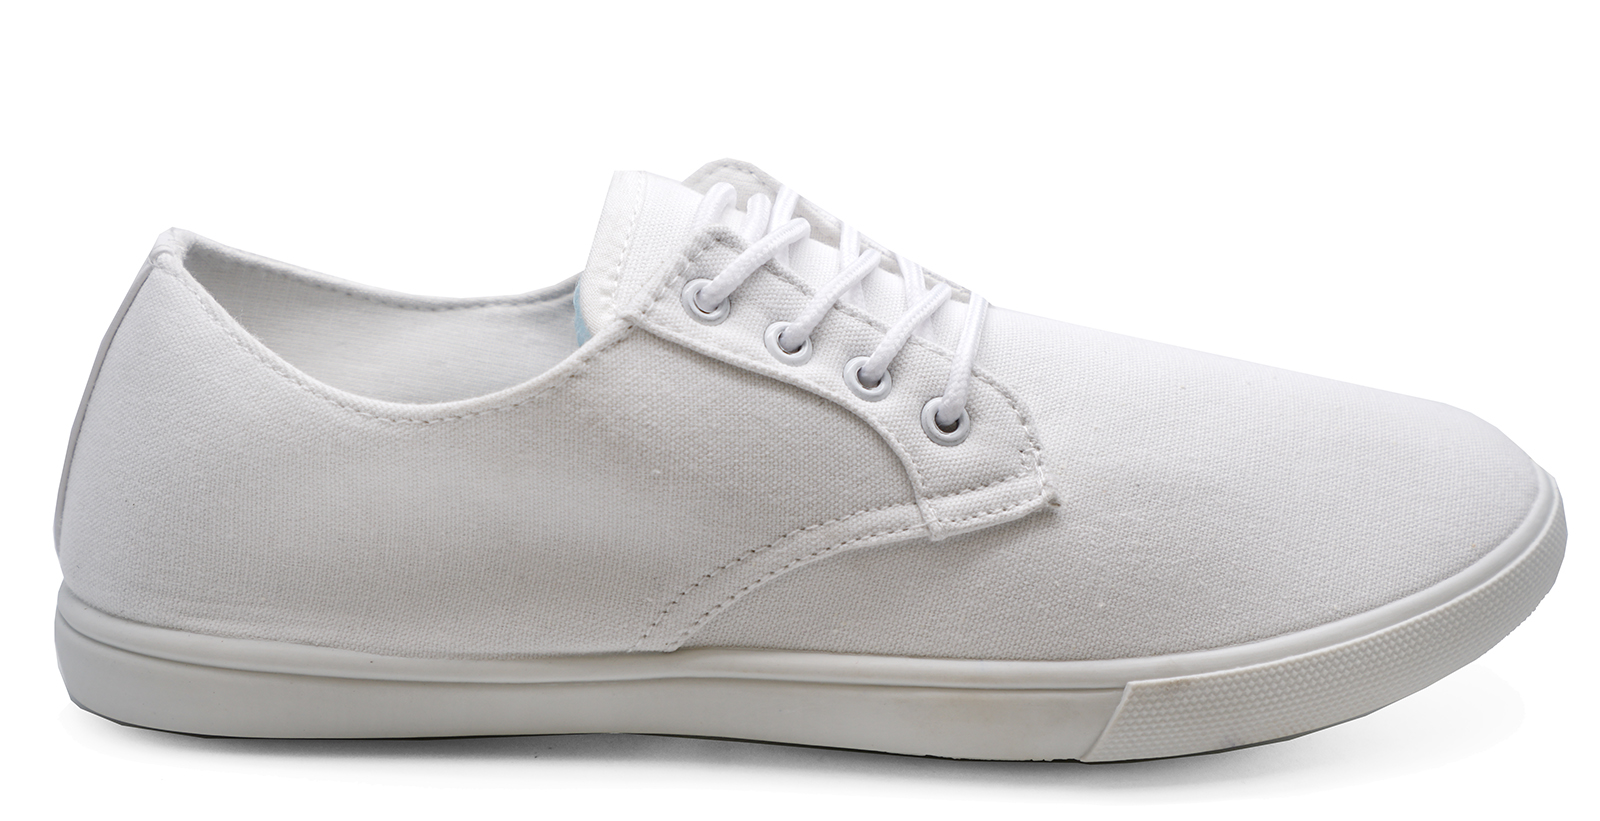 MENS-LACE-UP-WHITE-CANVAS-FLAT-TRAINER-PLIMSOLL-PUMPS-CASUAL-SHOES-SIZES-6-12 thumbnail 12